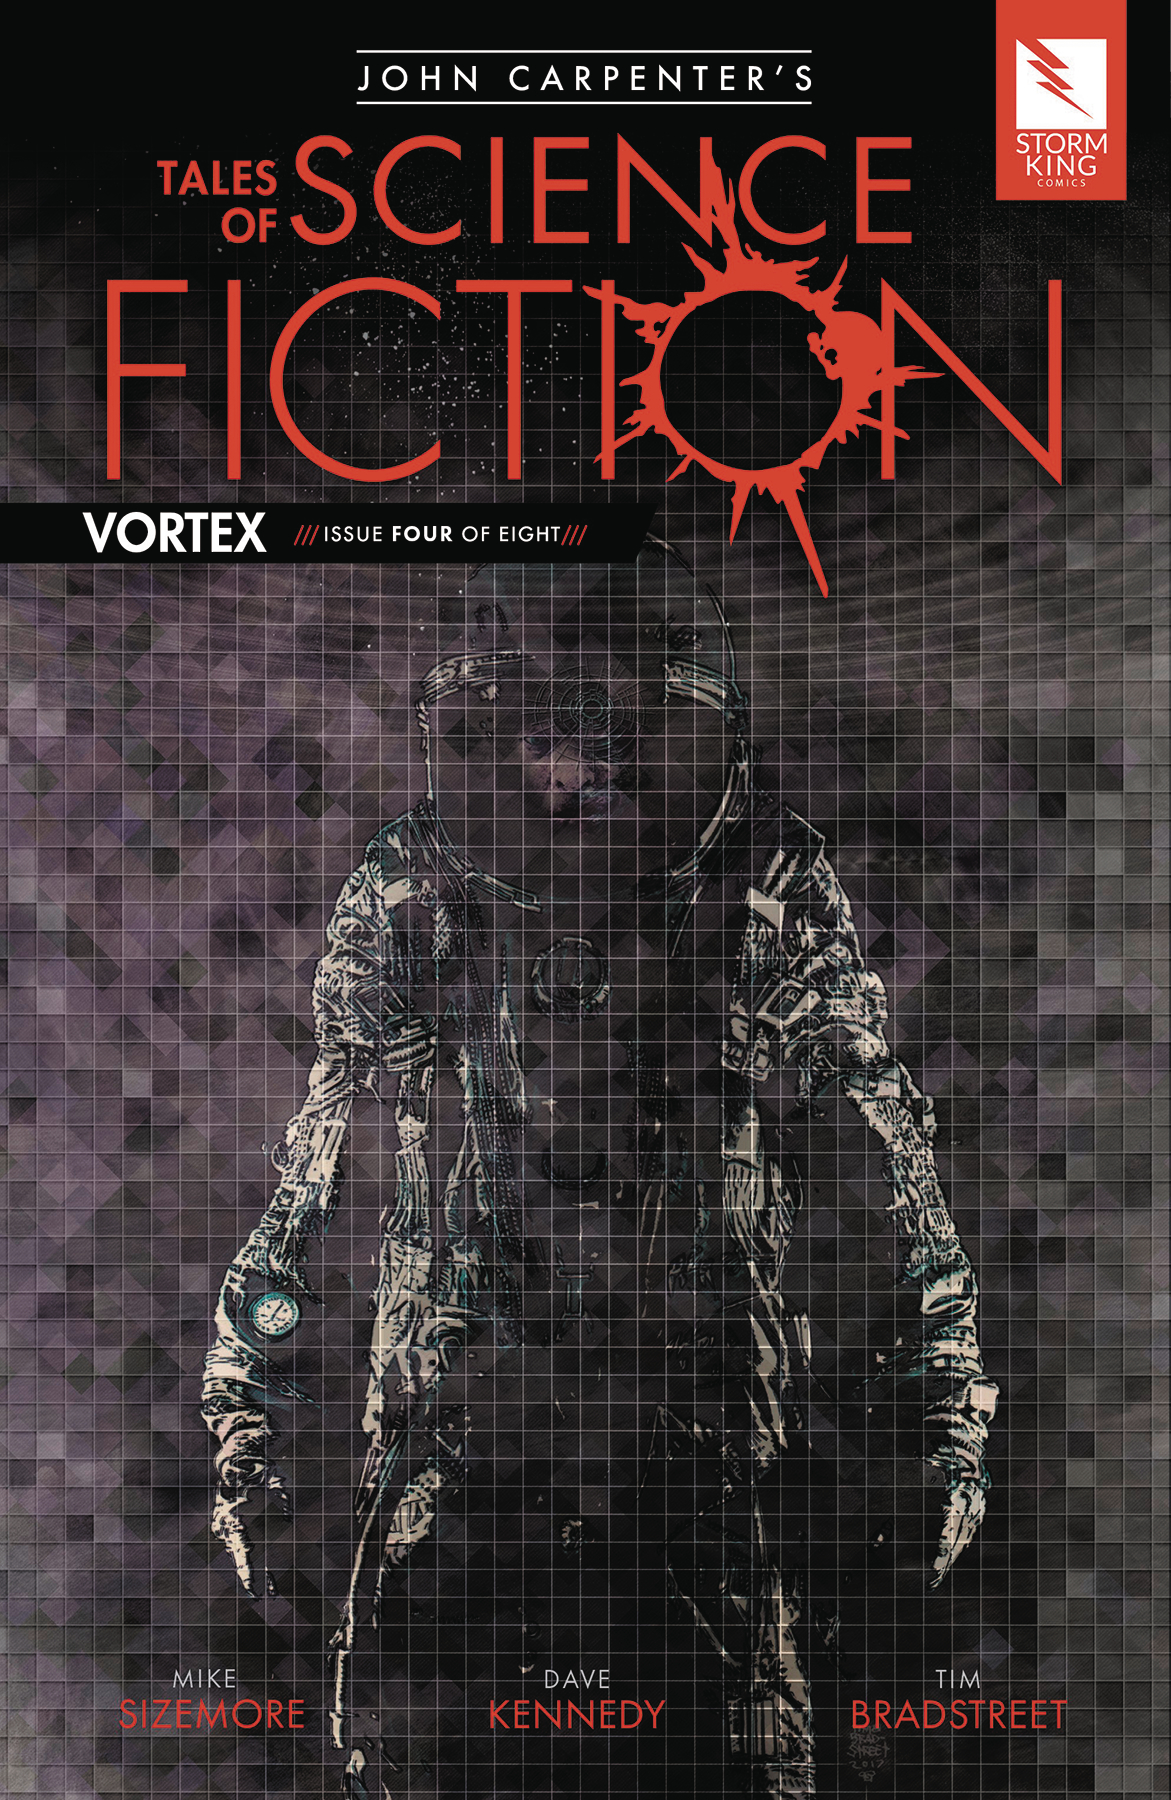 JOHN CARPENTER TALES OF SCI FI VORTEX #4 (OF 8) (MR)